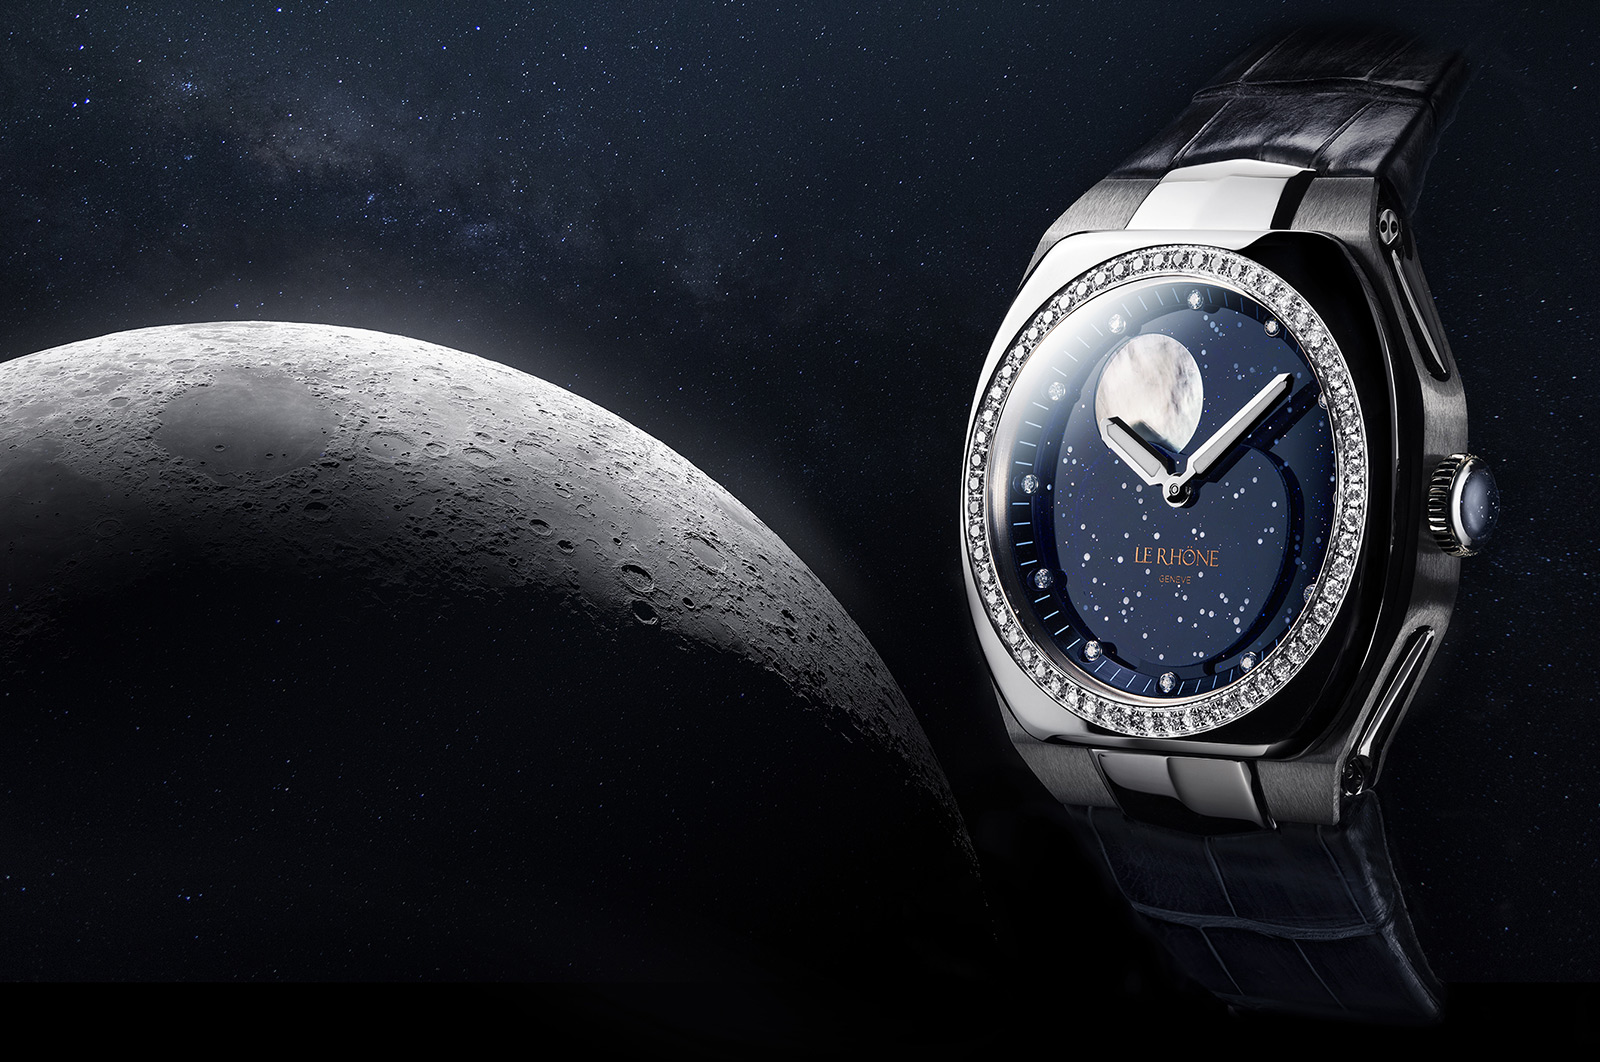 moon-41-le-rhone-watch-action-3